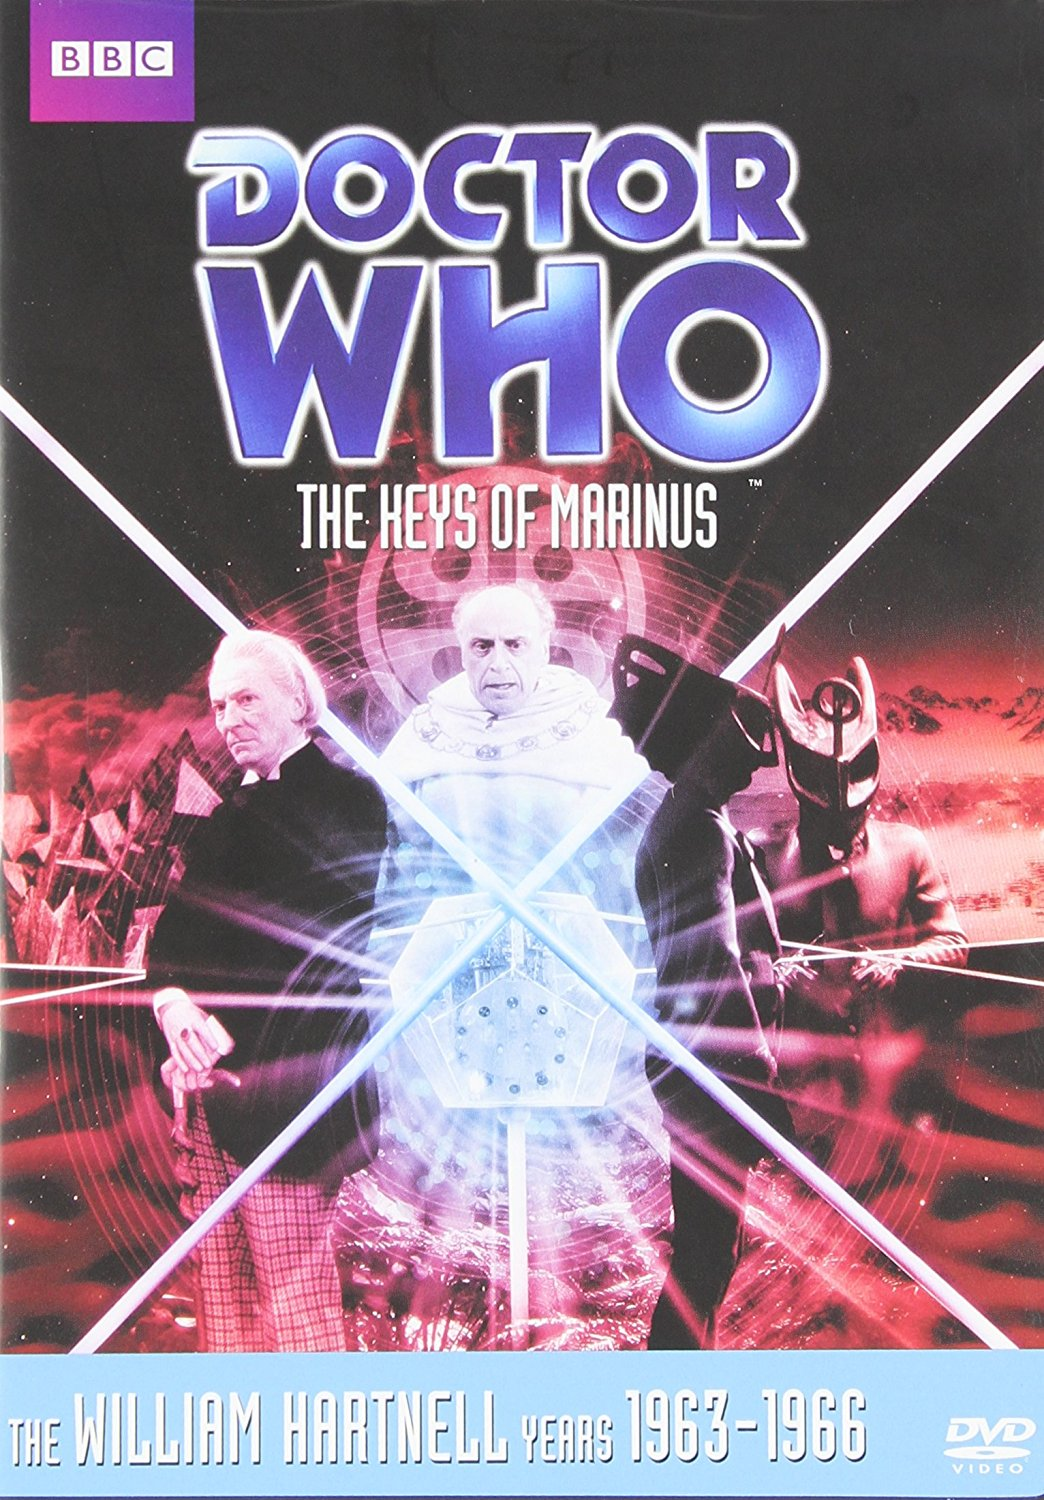 Doctor Who: The Keys of Marinus (1964) starring William Hartnell, Jacqueline Hill,  William Russell,  Carole Ann Ford